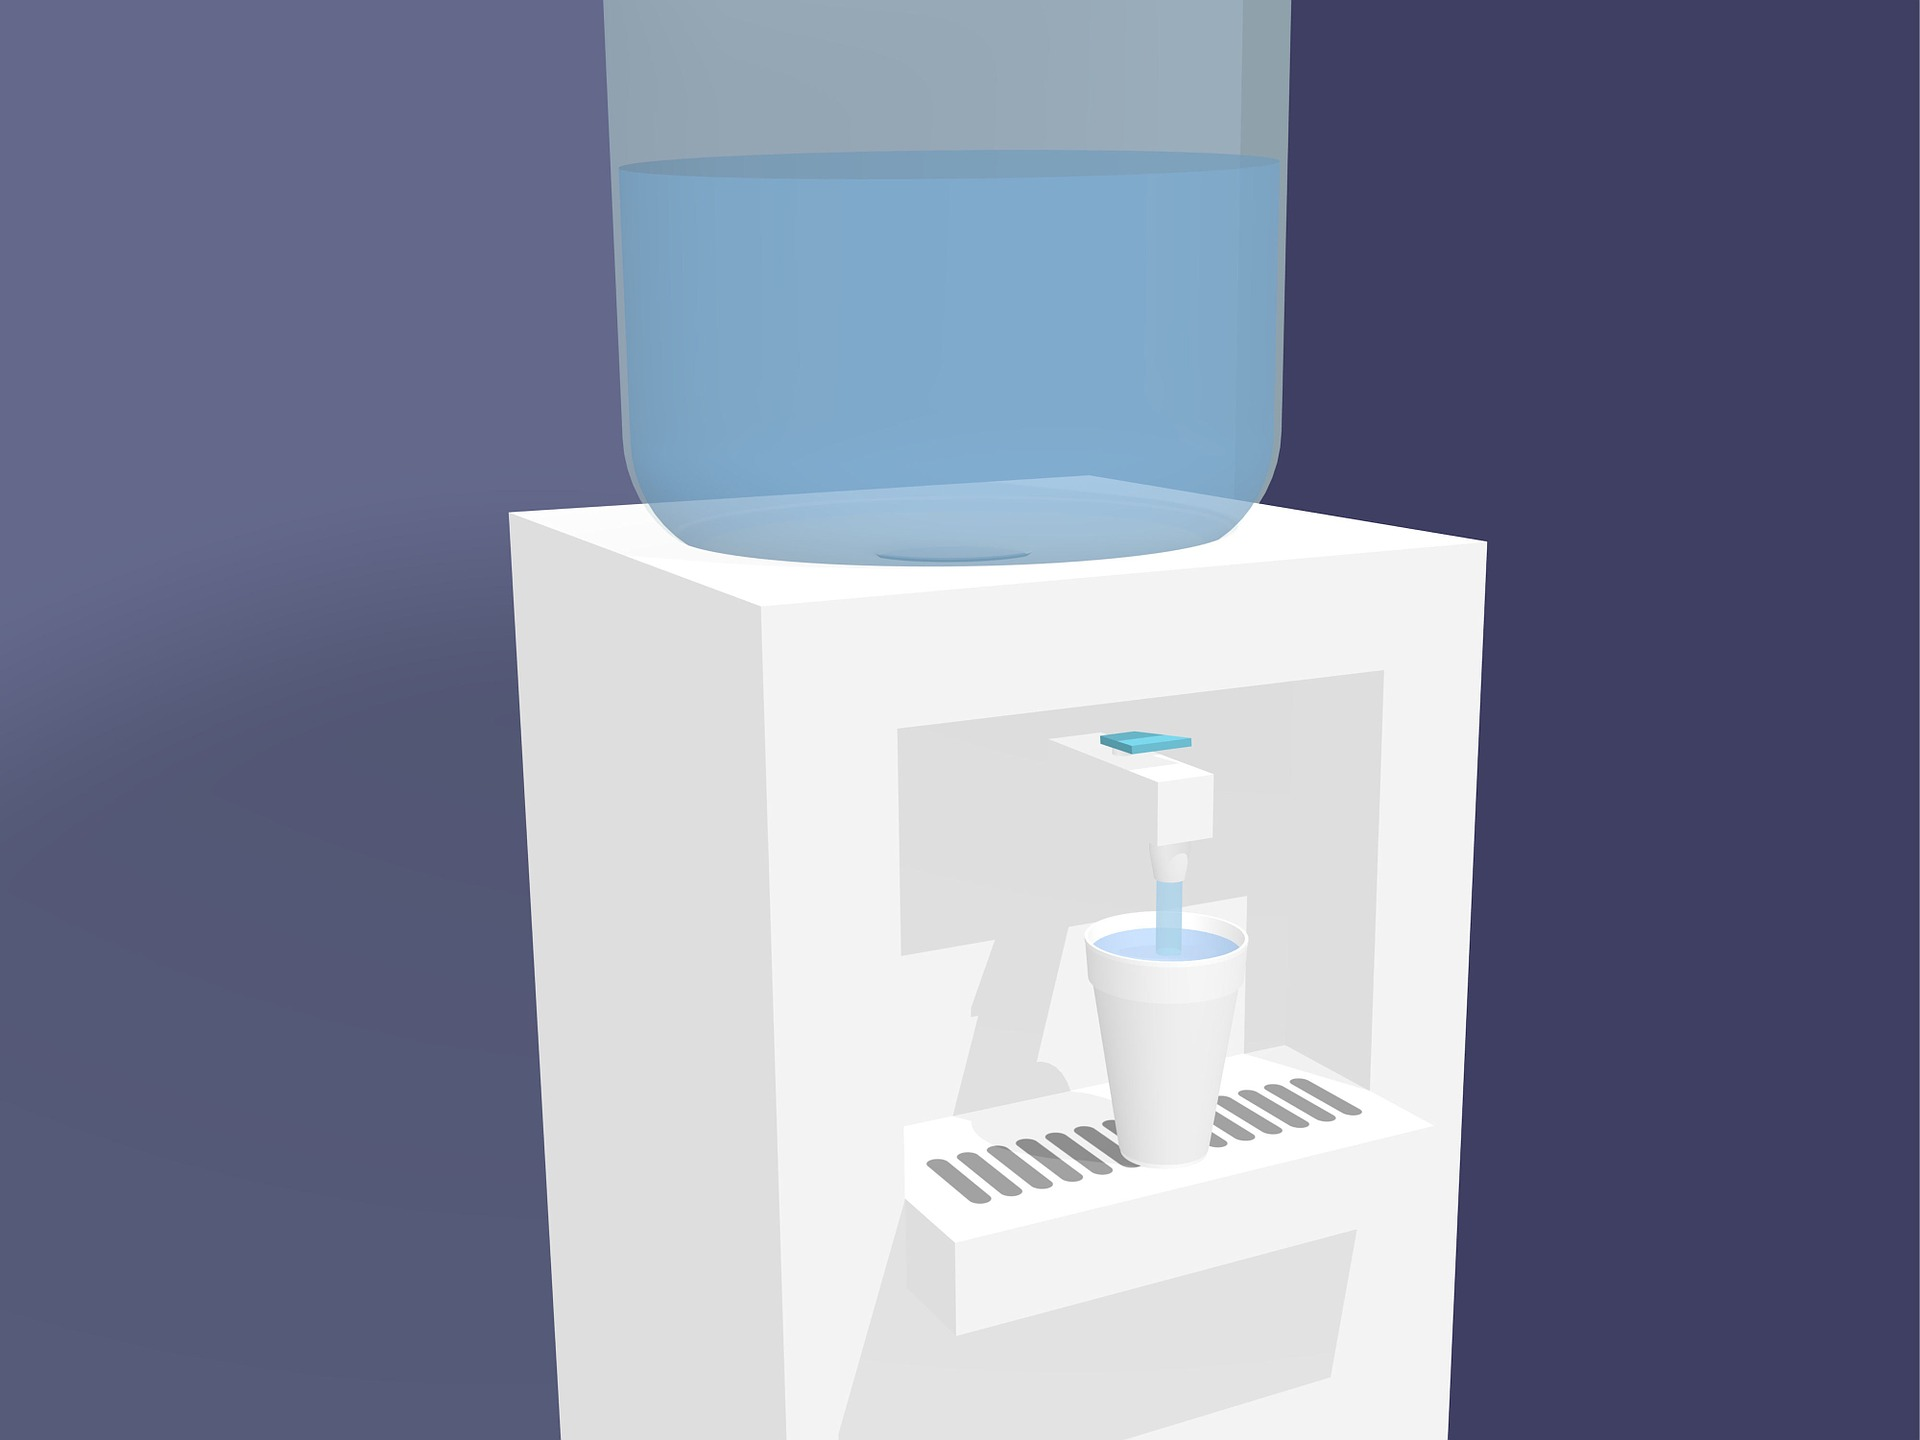 Reinventing The Water Cooler - And Why It Matters